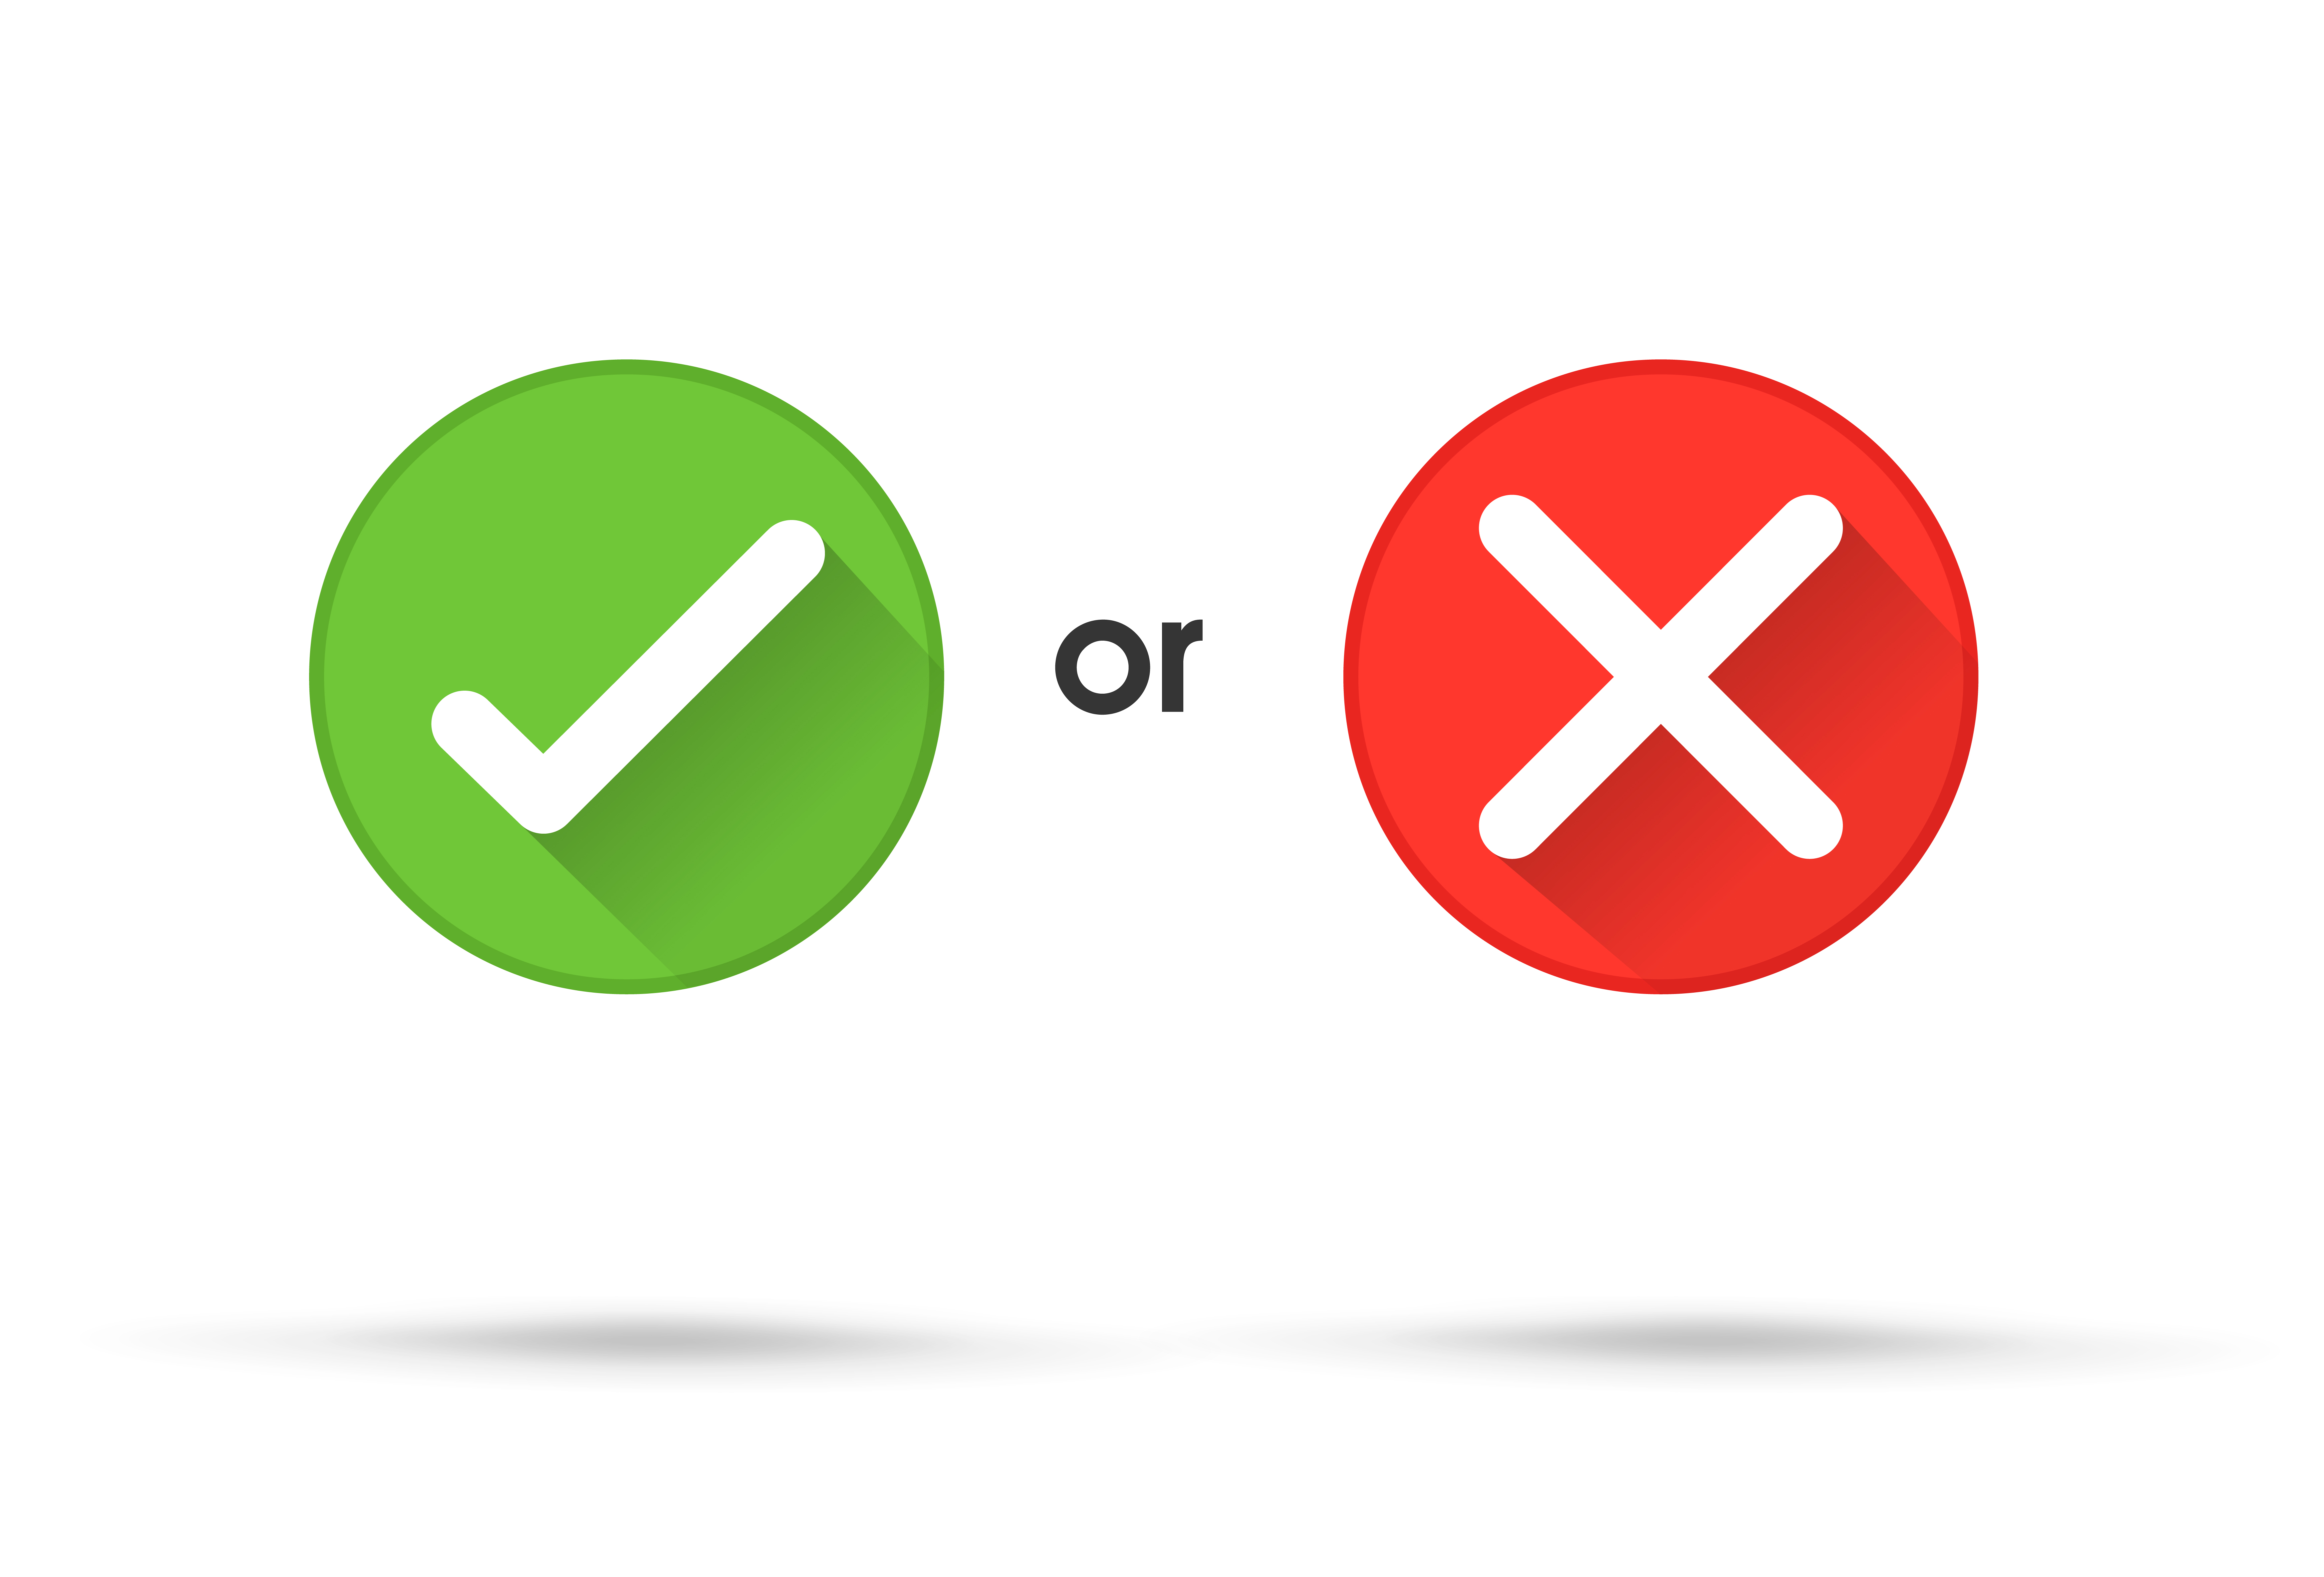 True and false symbols accept rejected for evaluation ...